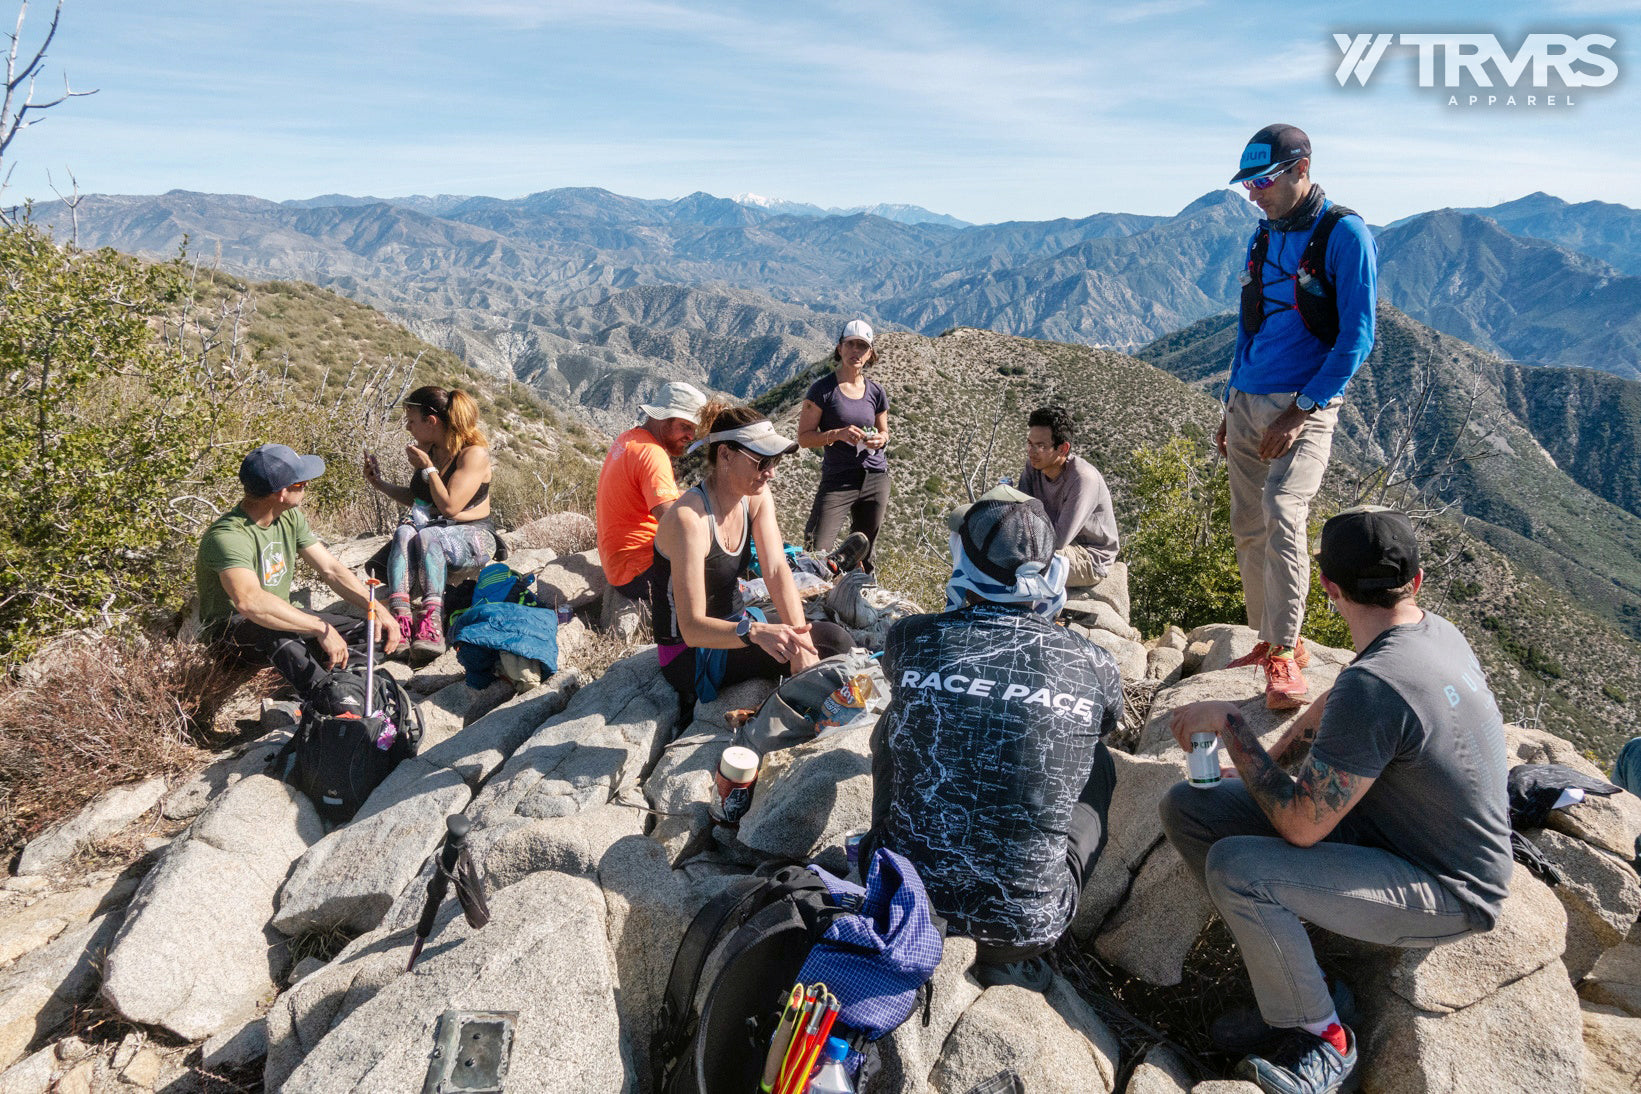 Condor Peak Summit beer - Big Tujunga Canyon - Angeles National Forest - San Gabriel Mountains - TRVRS APPAREL